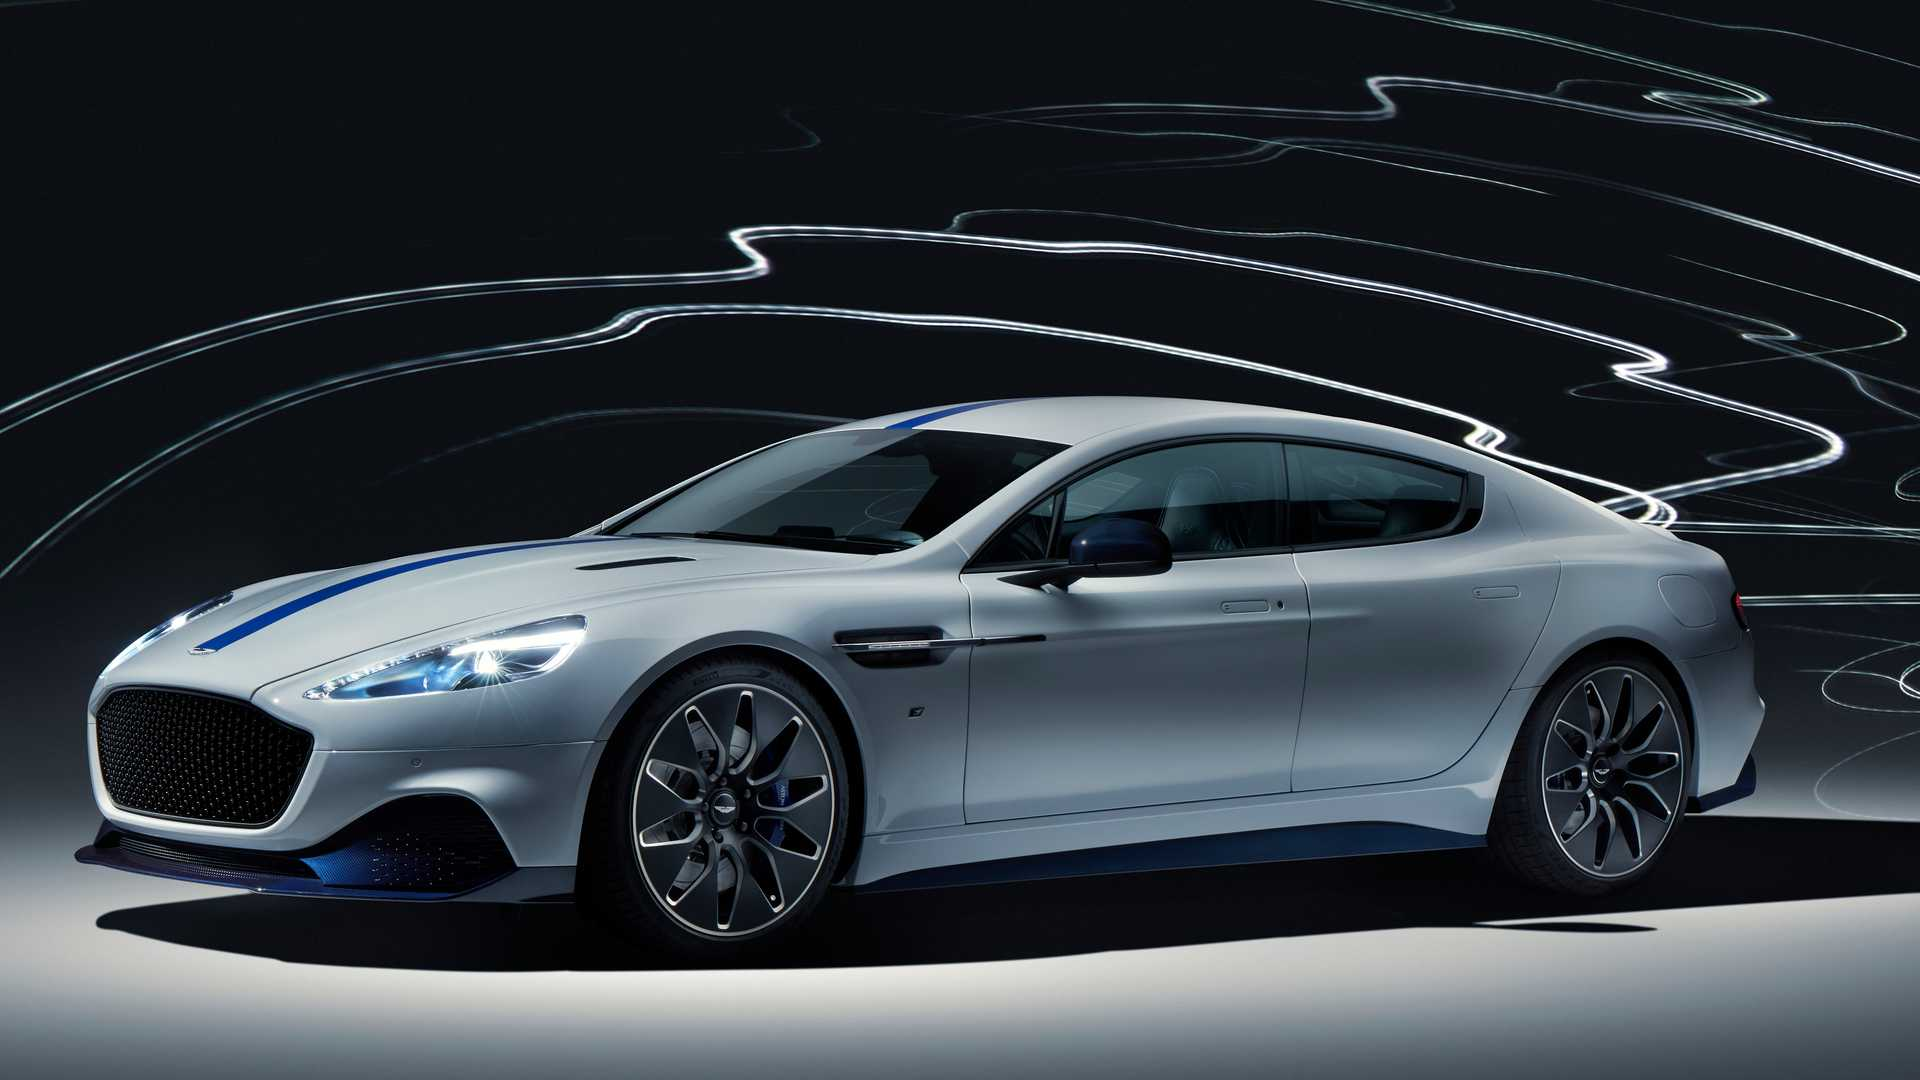 Aston Martin has come to the 2019 Auto Shanghai show with the final production copy of its Rapide E liftback